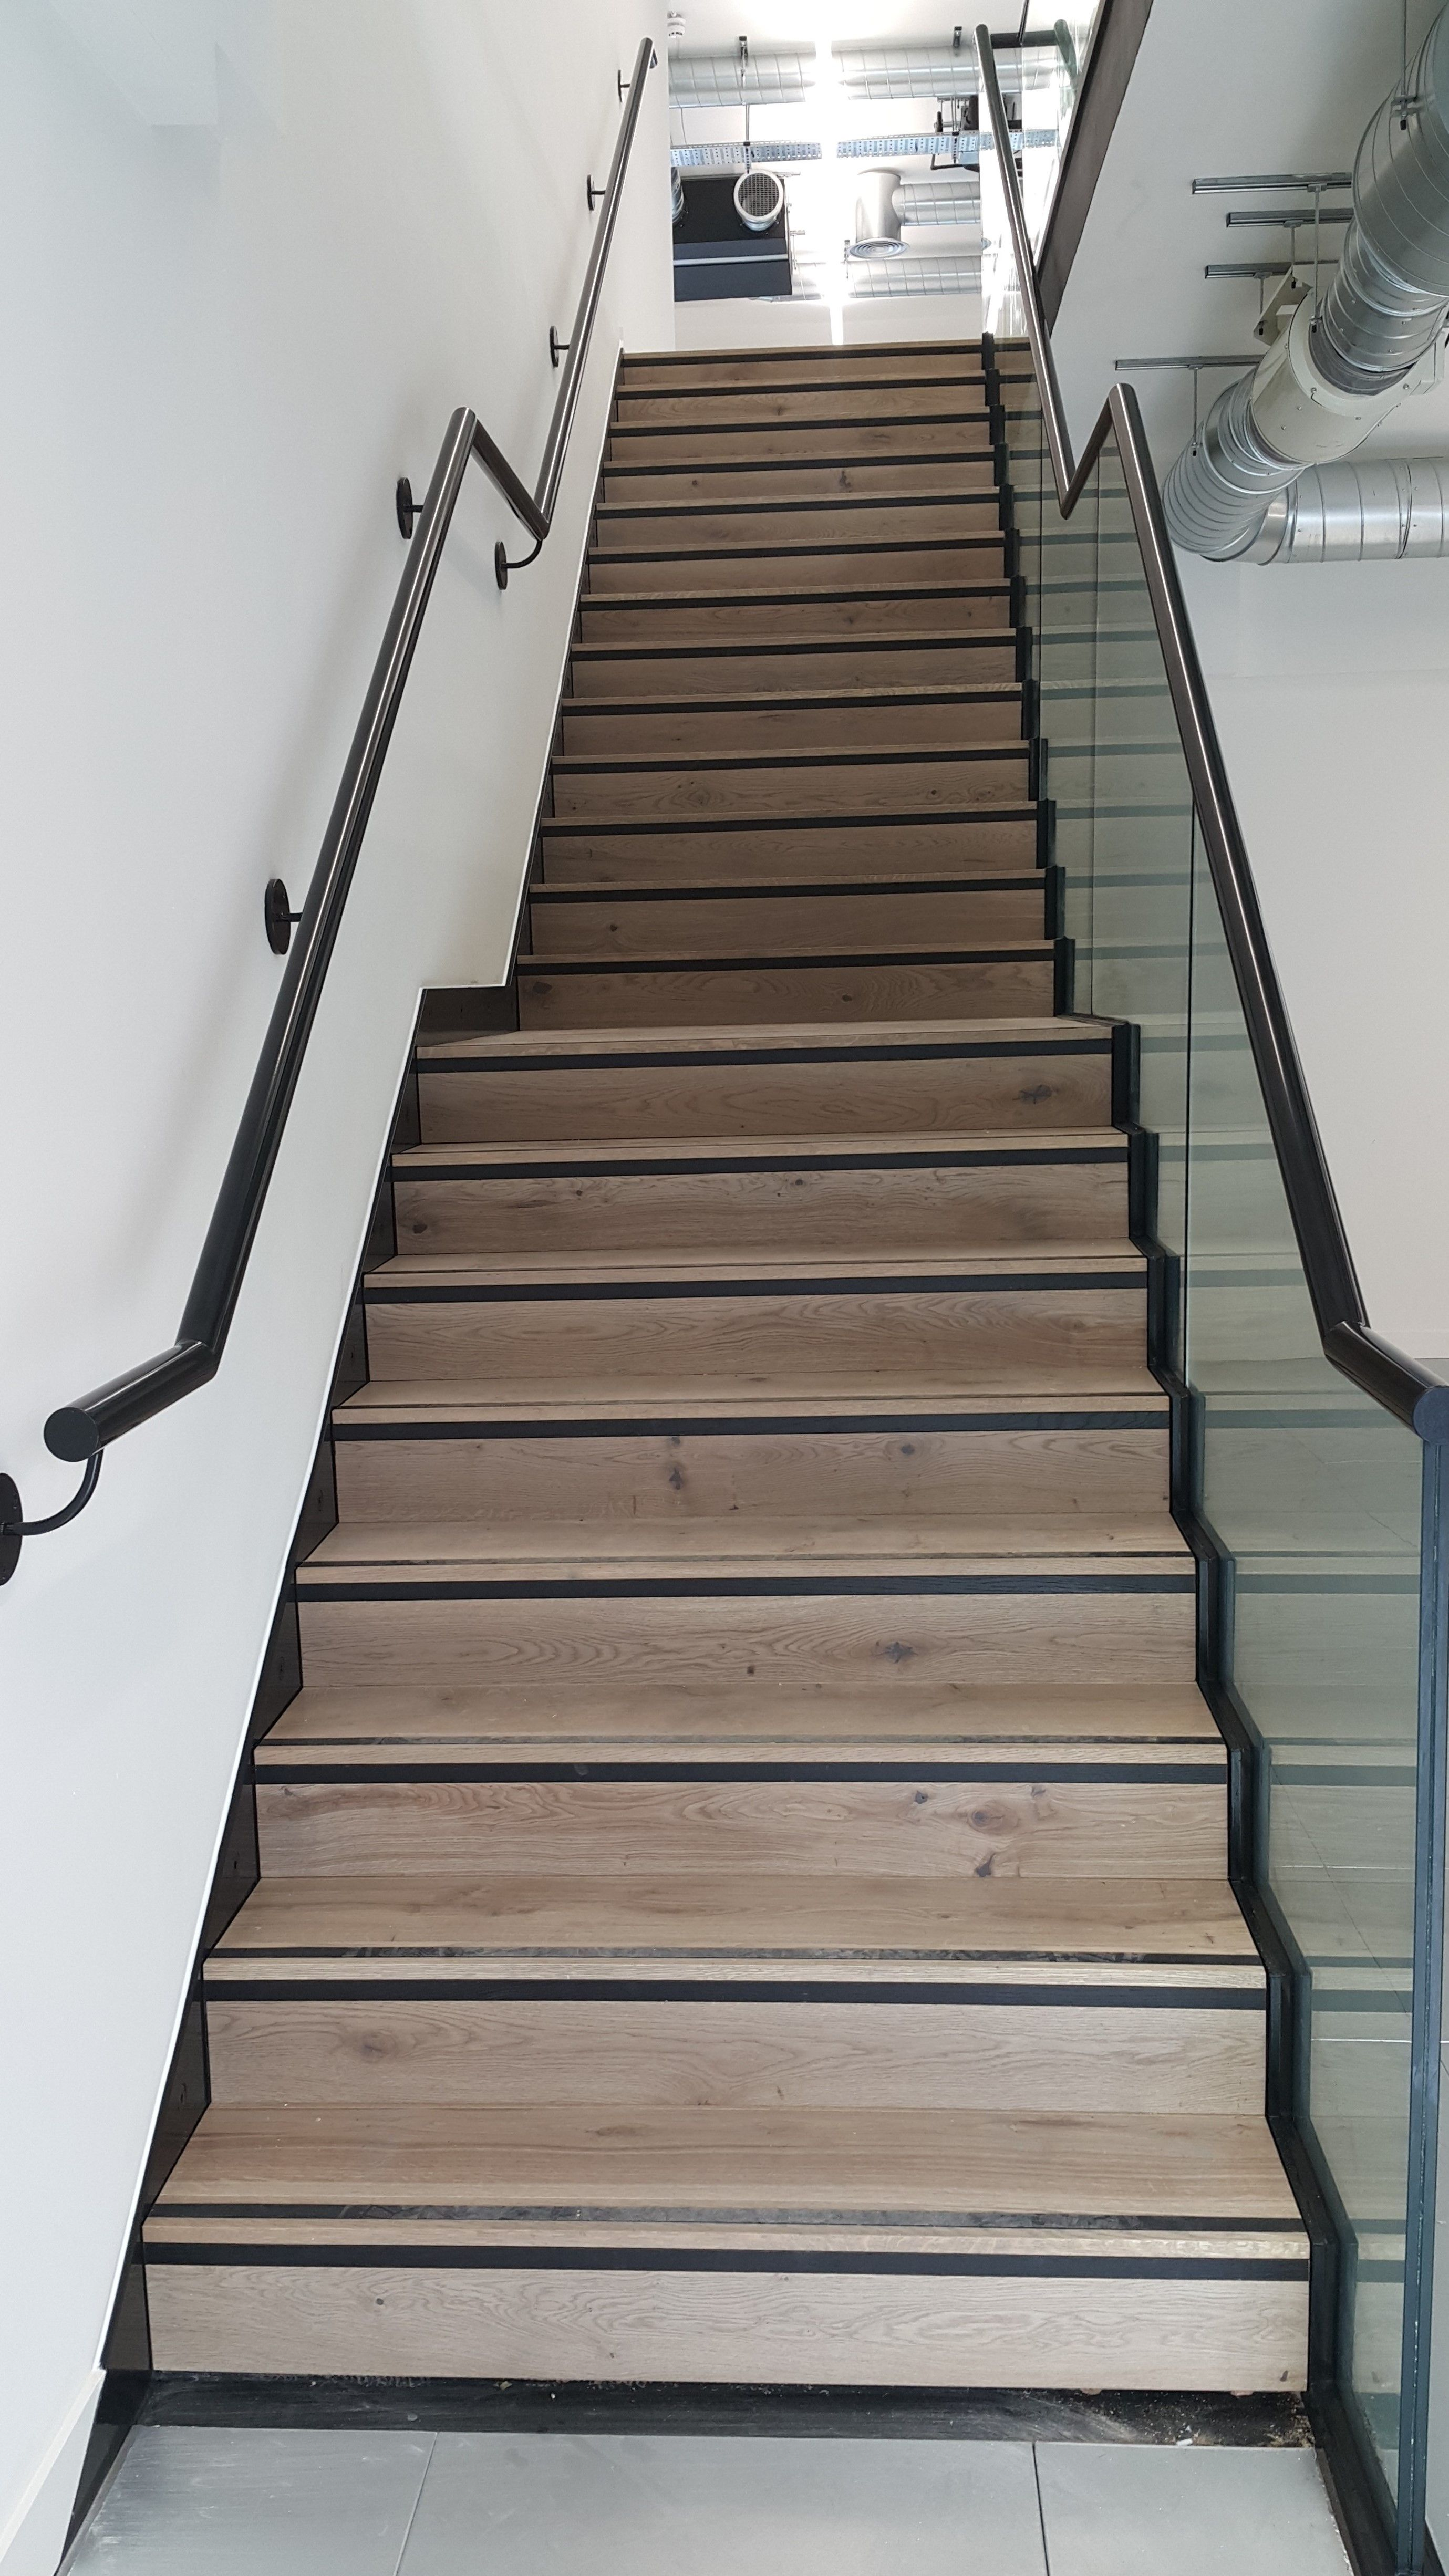 Glass Infill Photo Gallery: This Metal And Wooden Floating Staircase With Glass Infill Panels Created By Metcalfe Metal